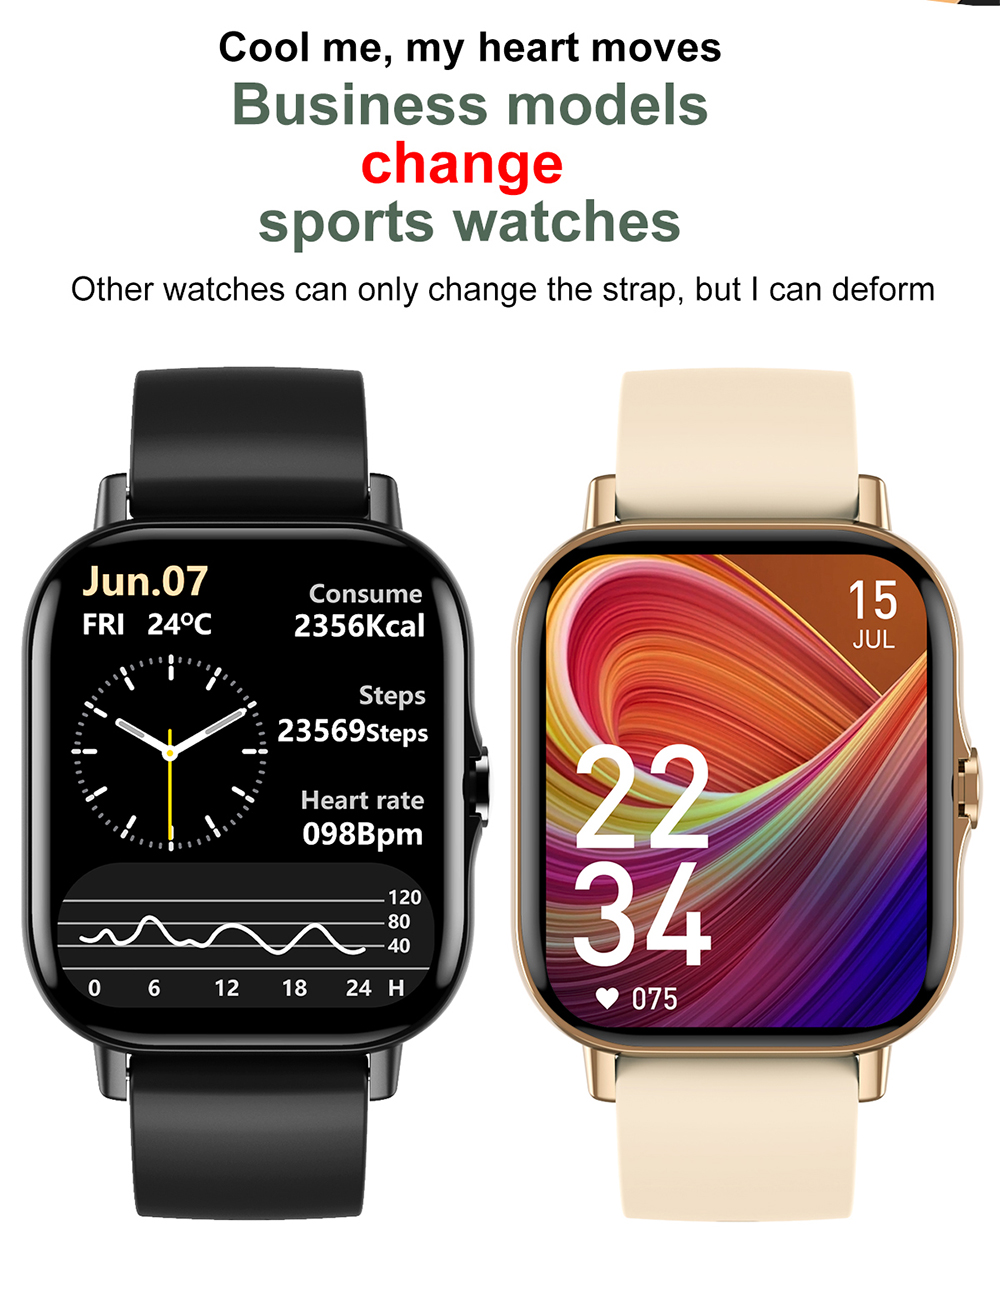 H82ff34826abc4cbfa036f8439c515e19I For Xiaomi IOS Apple Phone 1.78inch Smart Watch Android Men IP68 Waterproof Full Touch Woman Smartwatch Women 2021 Answer Call